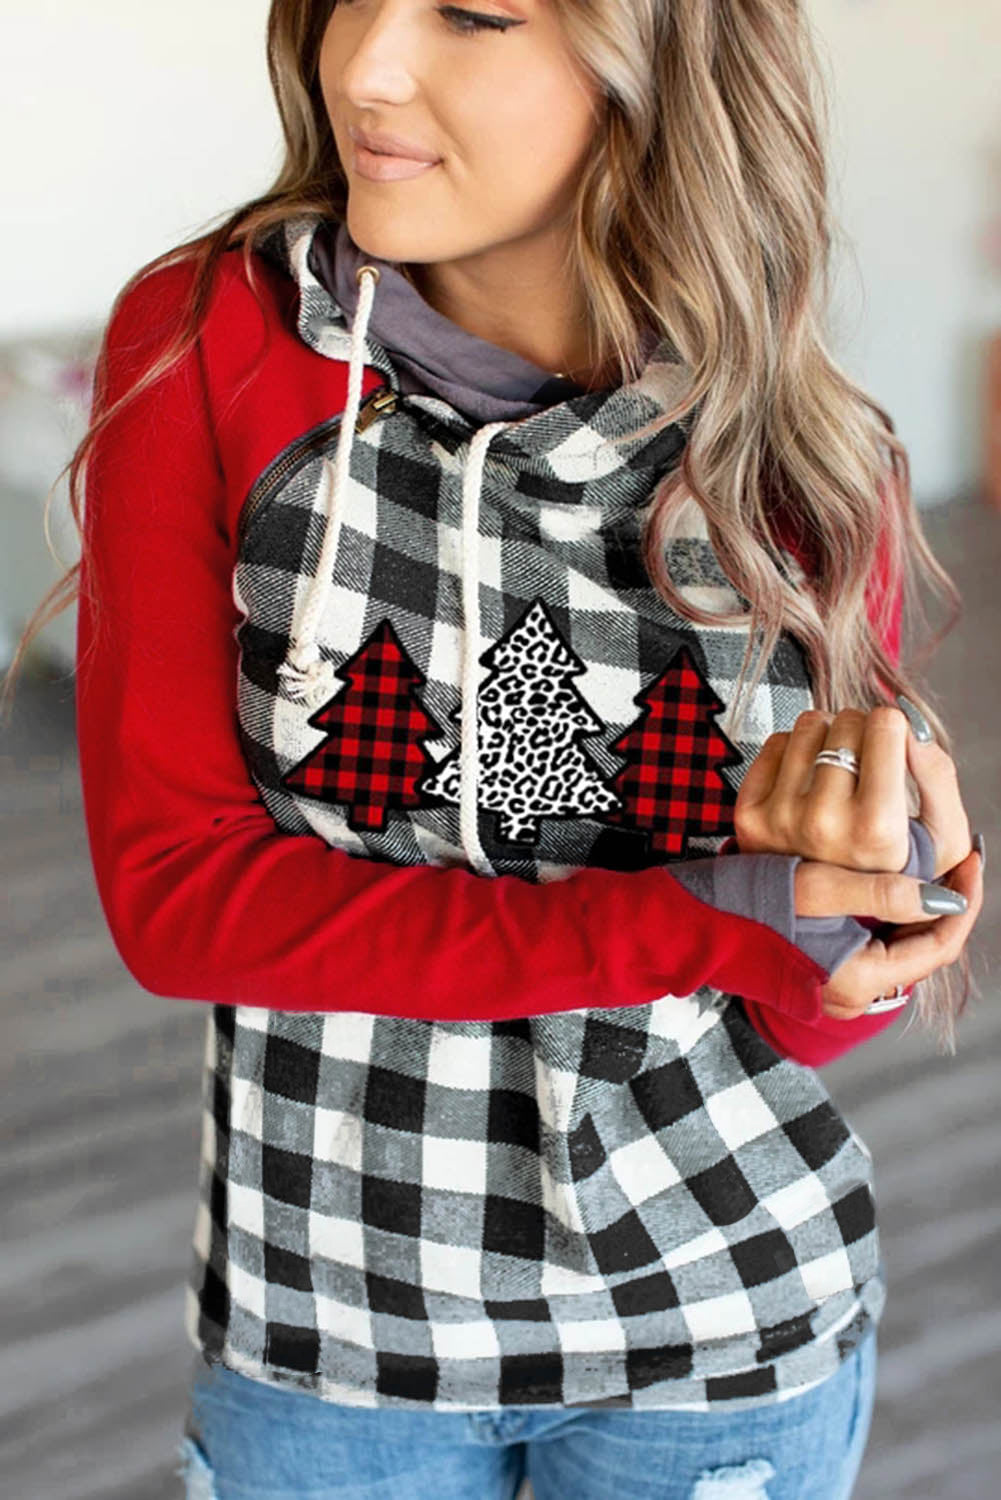 Christmas Tree Plaid Pattern Asymmetric Zip Hoodie Sweatshirts & Hoodies Discount Designer Fashion Clothes Shoes Bags Women Men Kids Children Black Owned Business